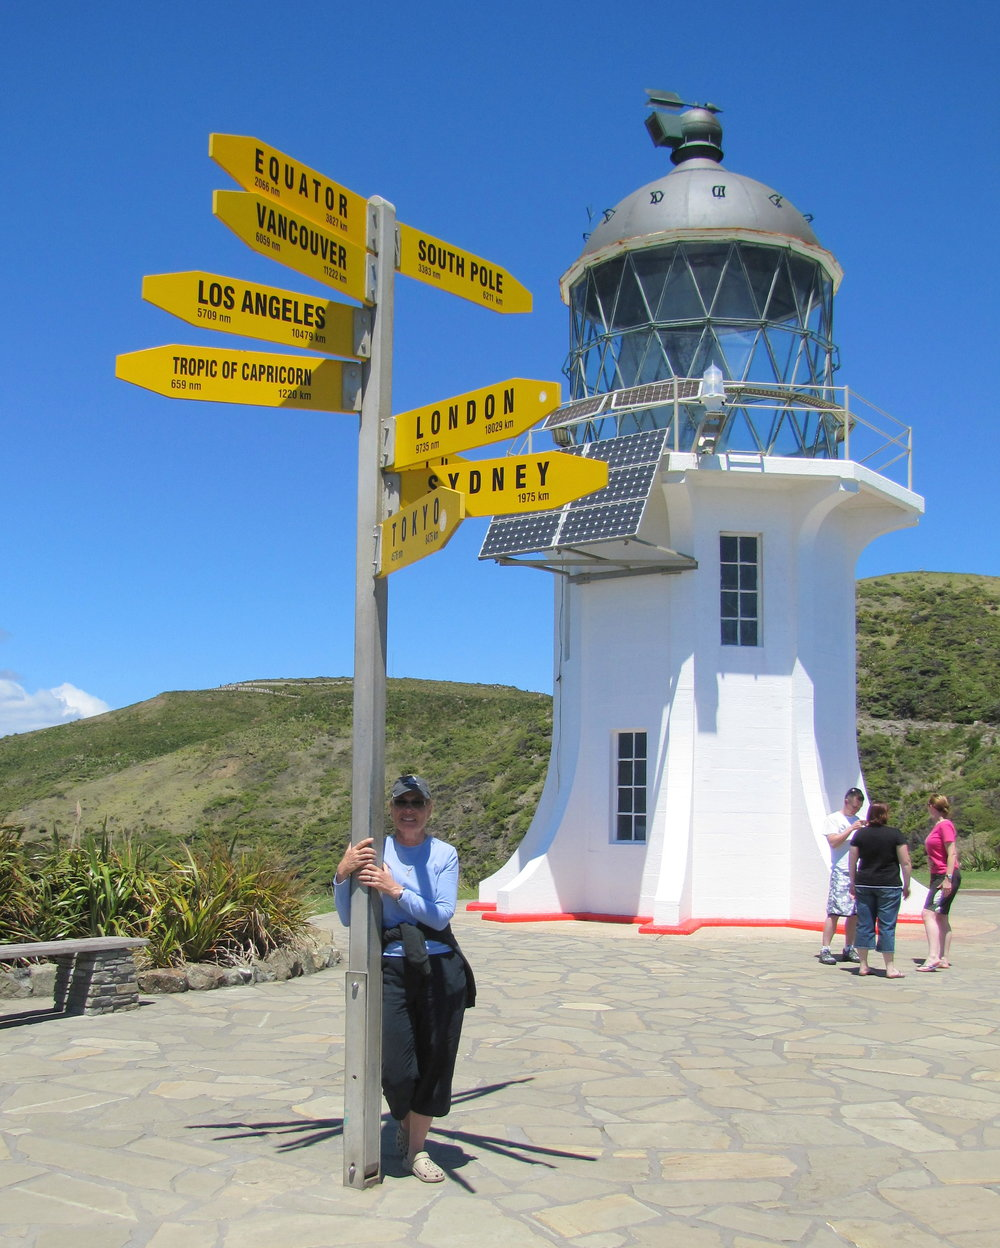 We visited Cape Reinga by land first, then sailed around it on our way south.